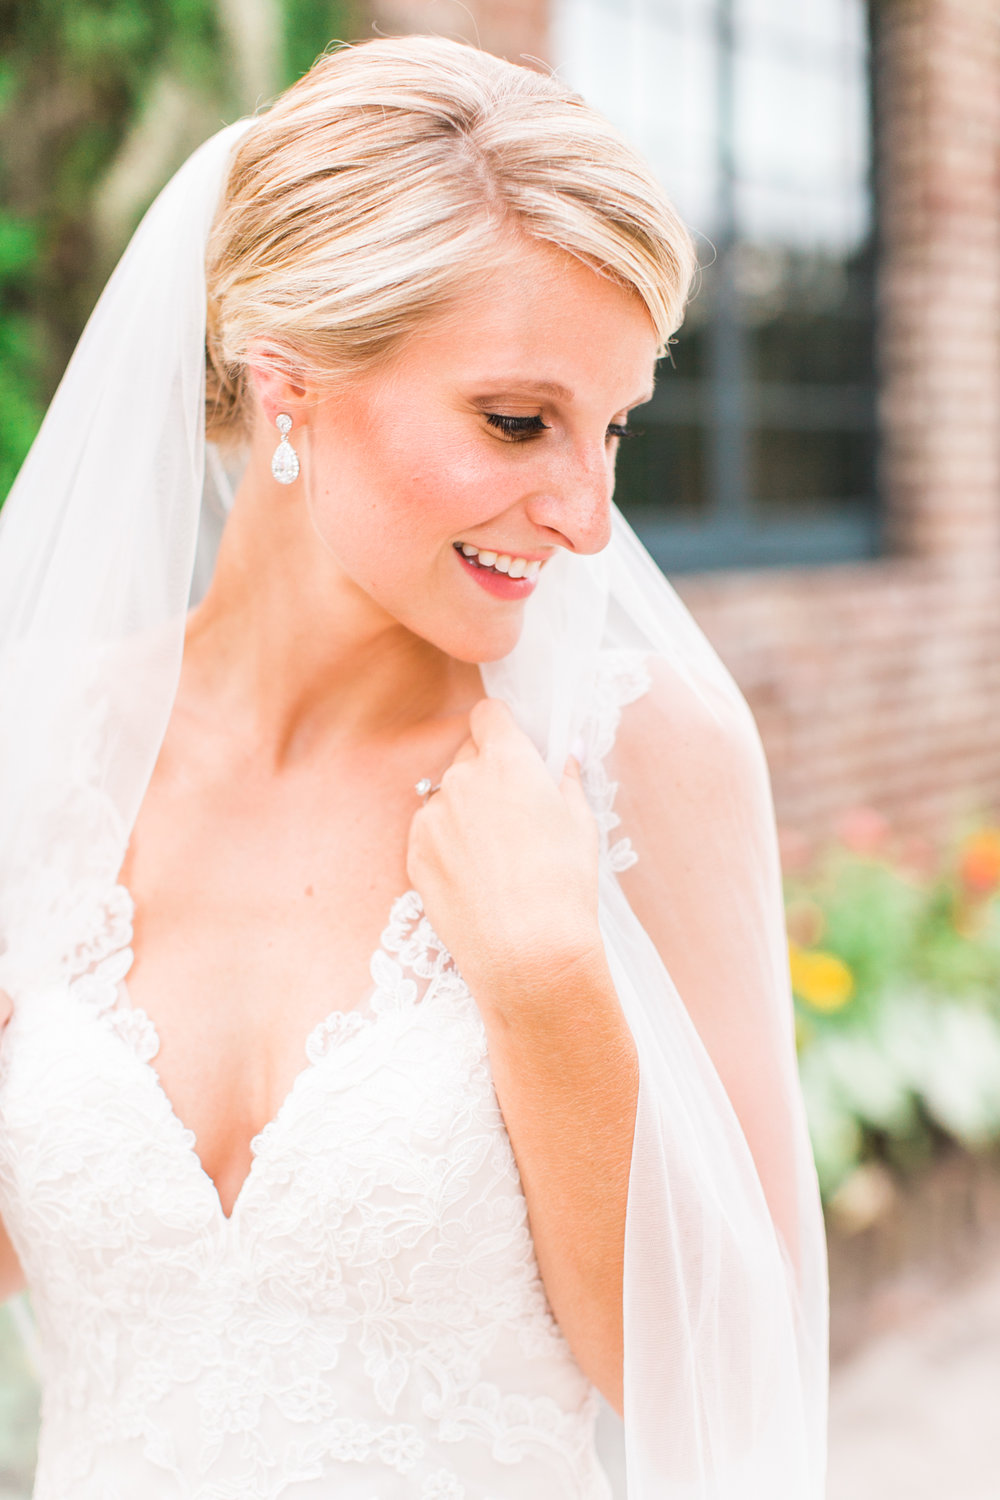 middletonplacebridals-67.jpg